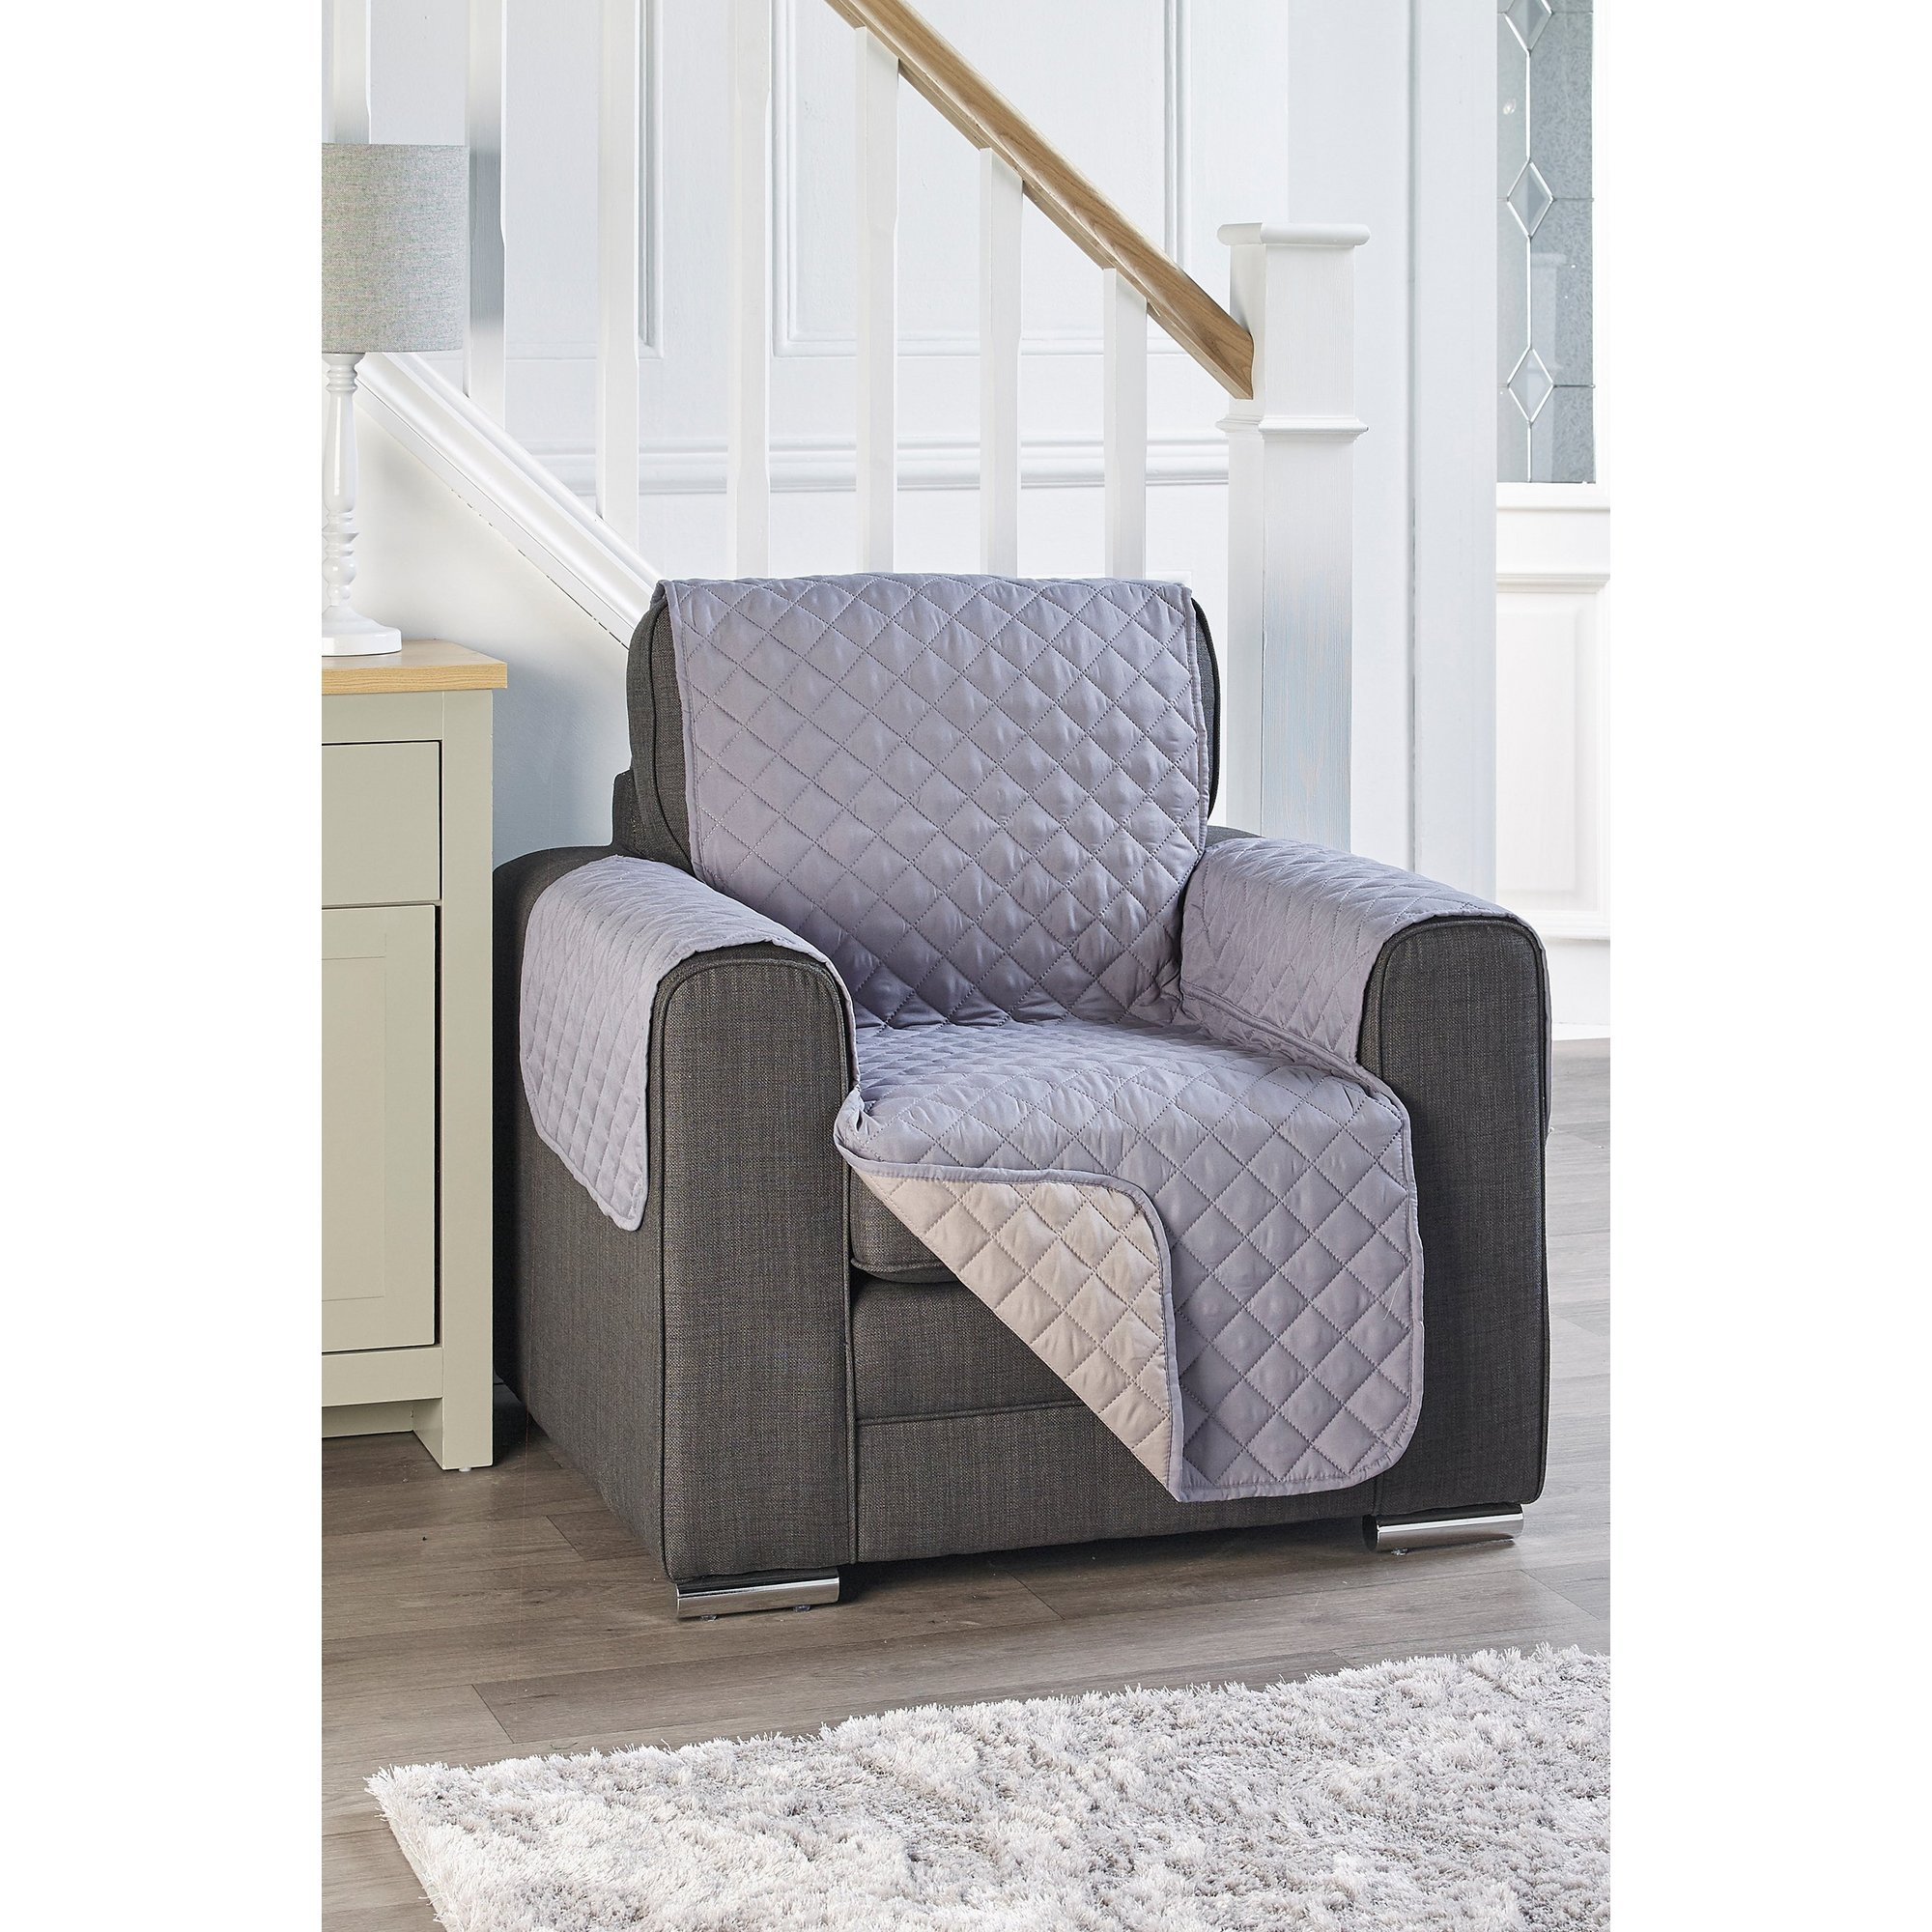 Image of Reversible Furniture Protector